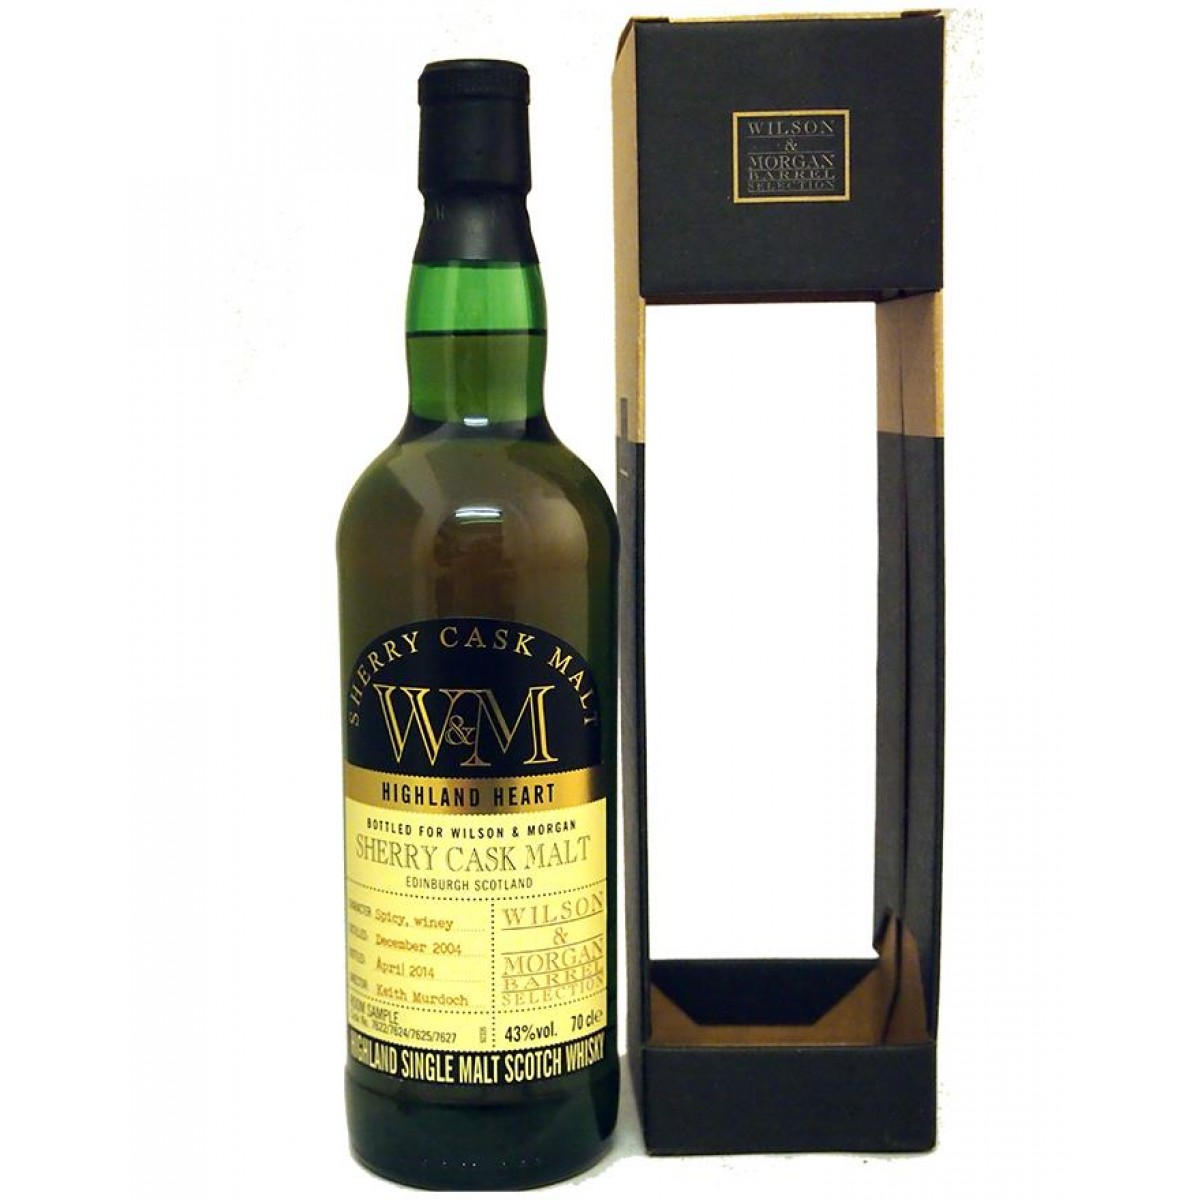 Confezione regalo Whisky Sherry Cask Malt Wilson & Morgan